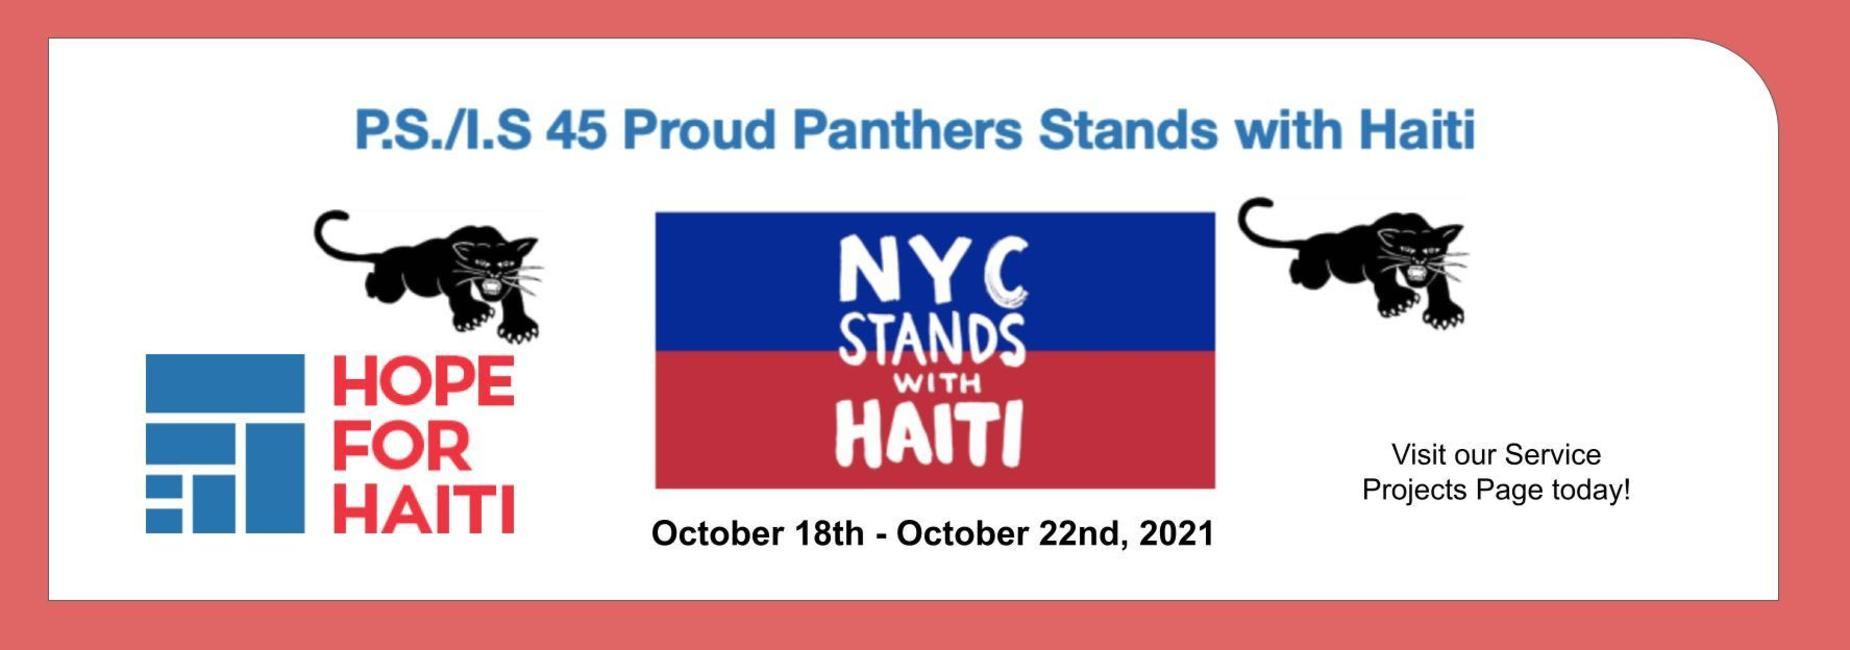 PS/IS 45 Proud Panthers Stand with Haiti. October 18th-October 22nd 2021. Visit our service projects page today!